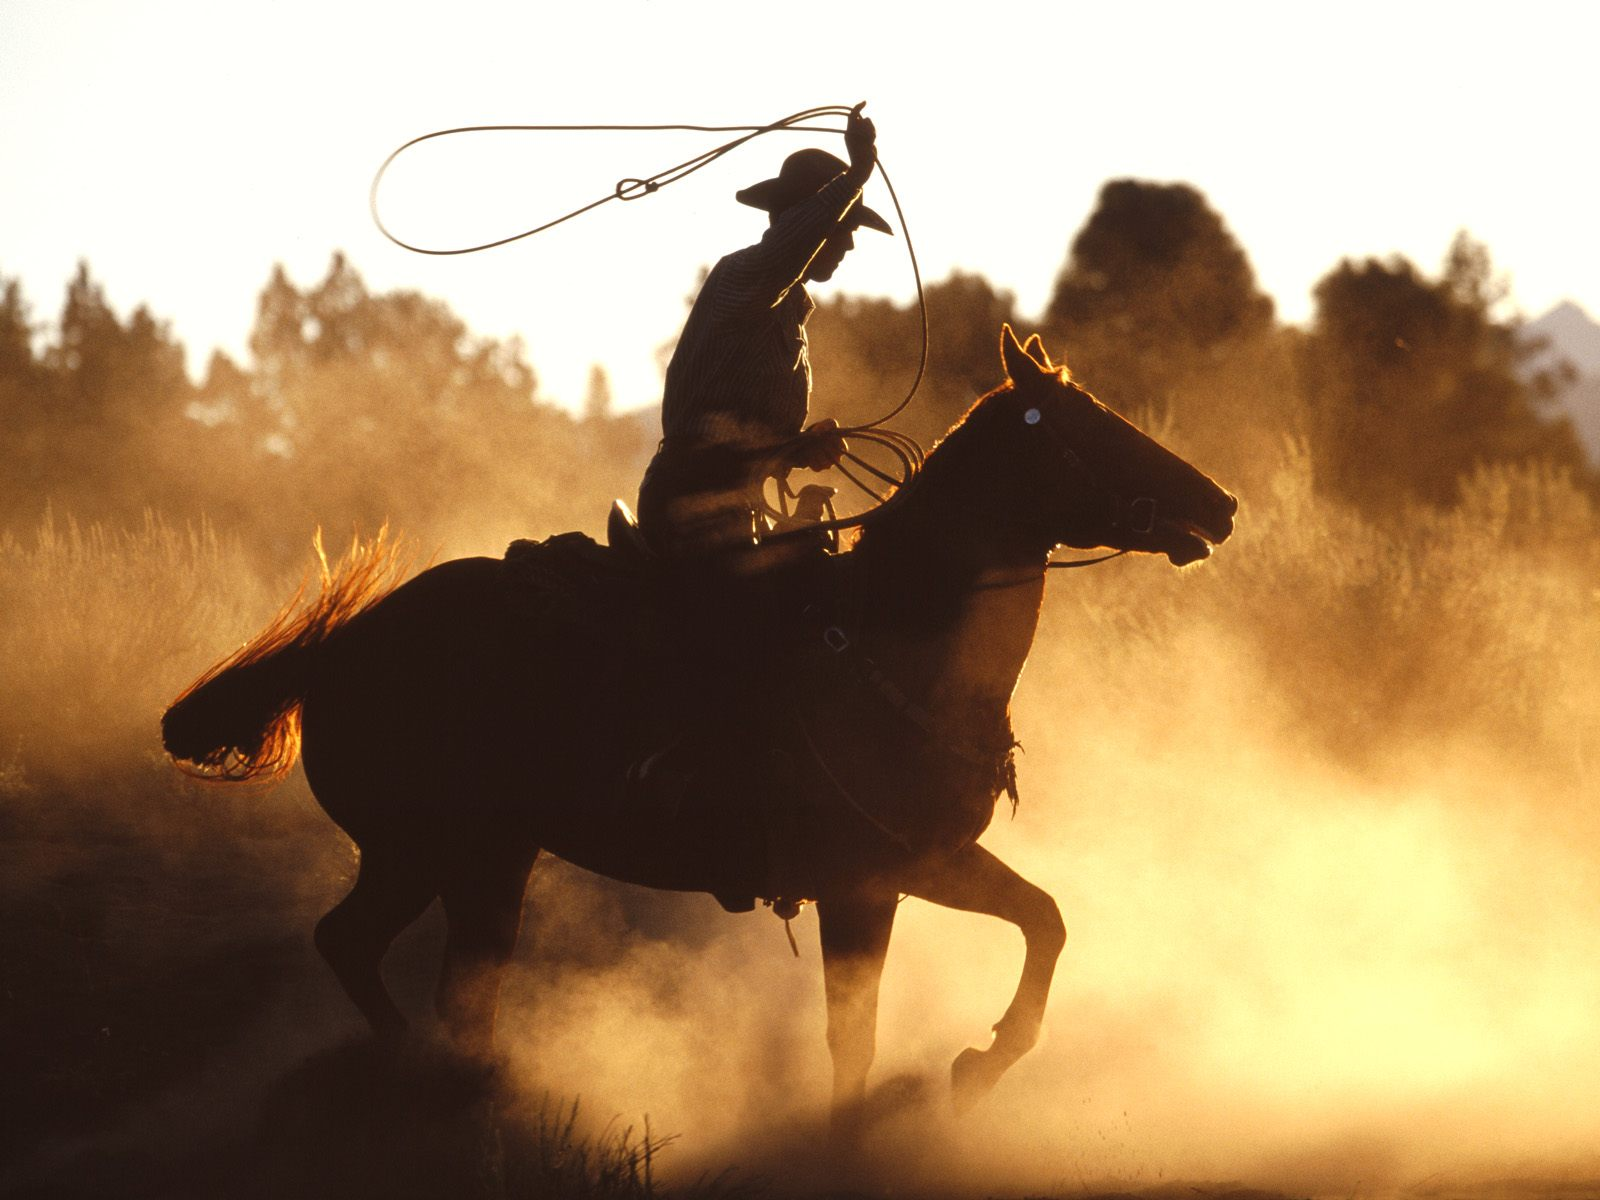 1600x1200 Cowboy with lasso desktop wallpapers and stock photos